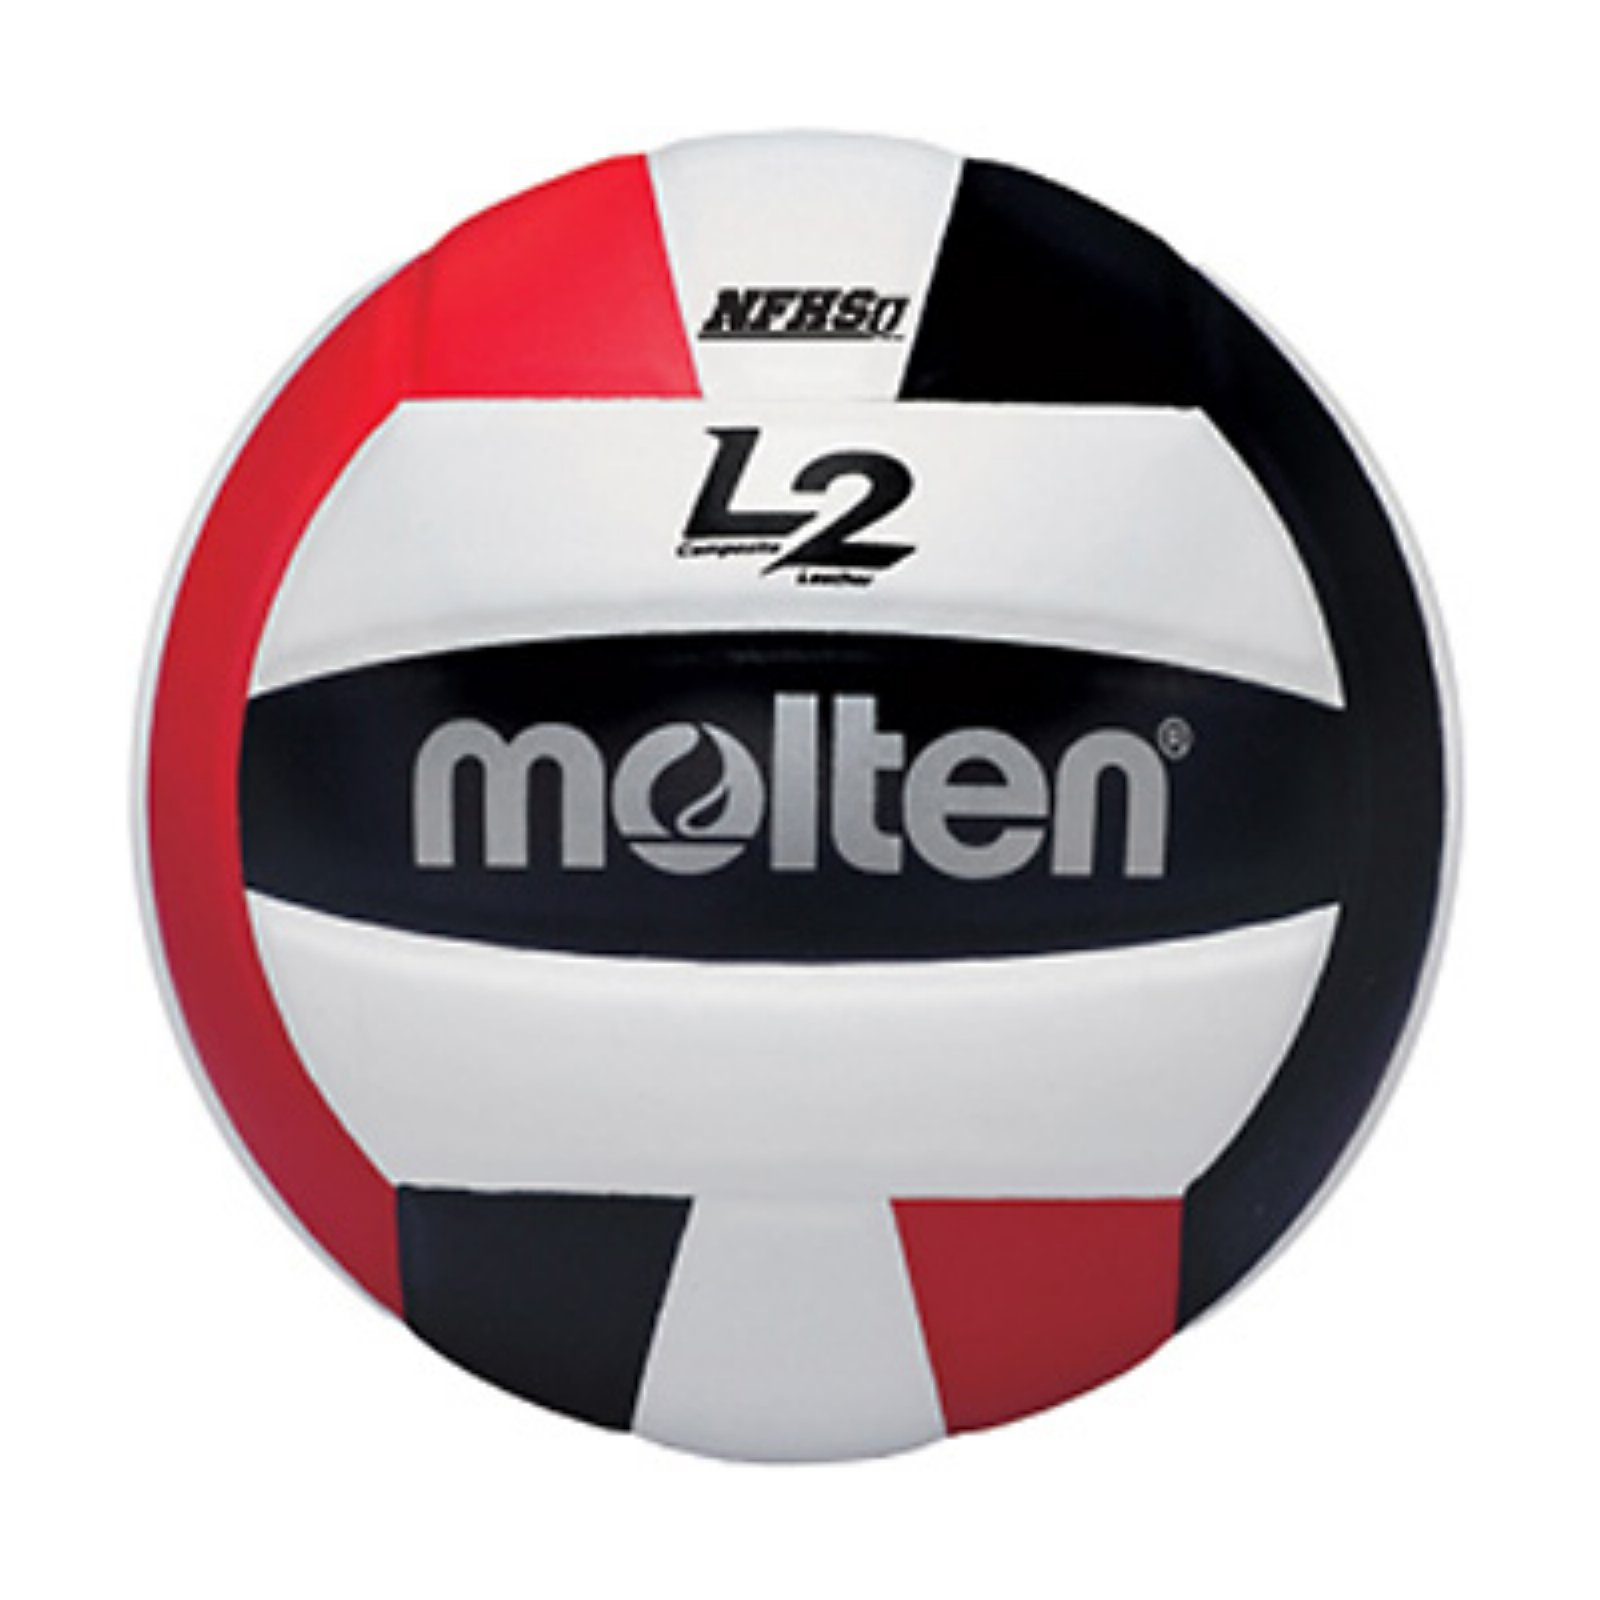 Molten L2 Series Nfhs Approved Volleyball Black White Red Molten Volleyball Indoor Volleyball Volleyball